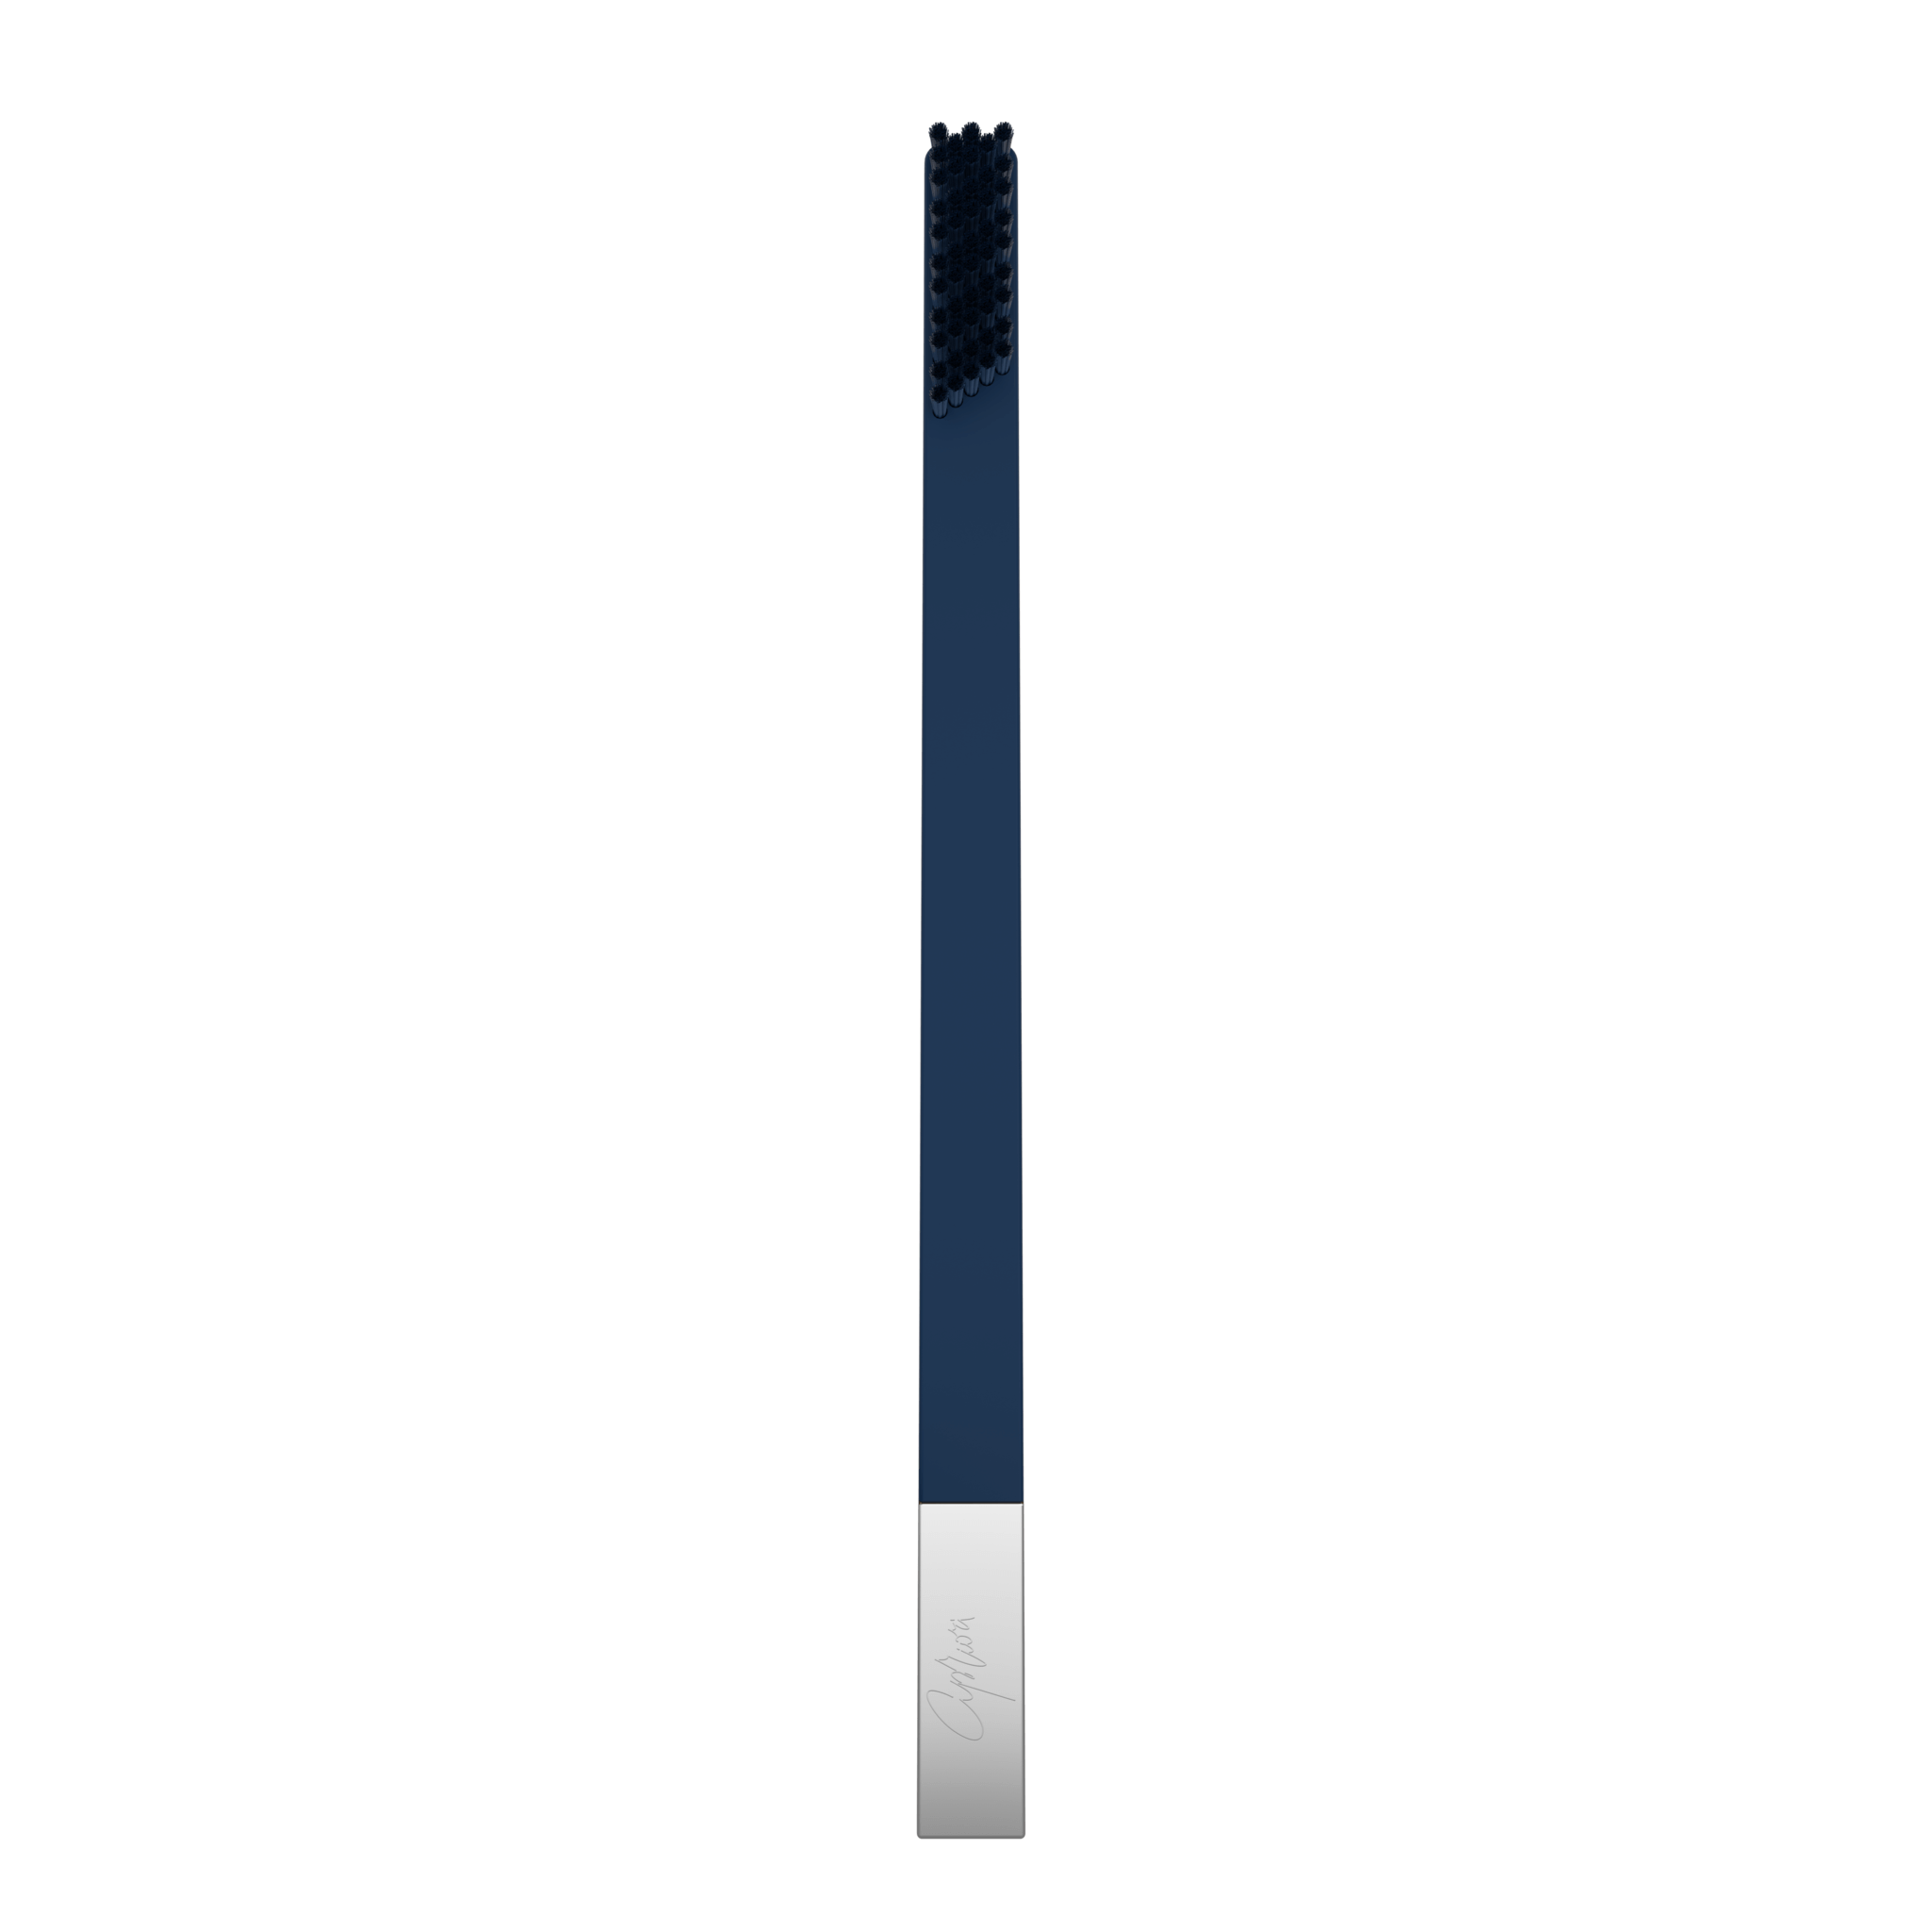 SLIM by Apriori sapphire & silver disposable toothbrush